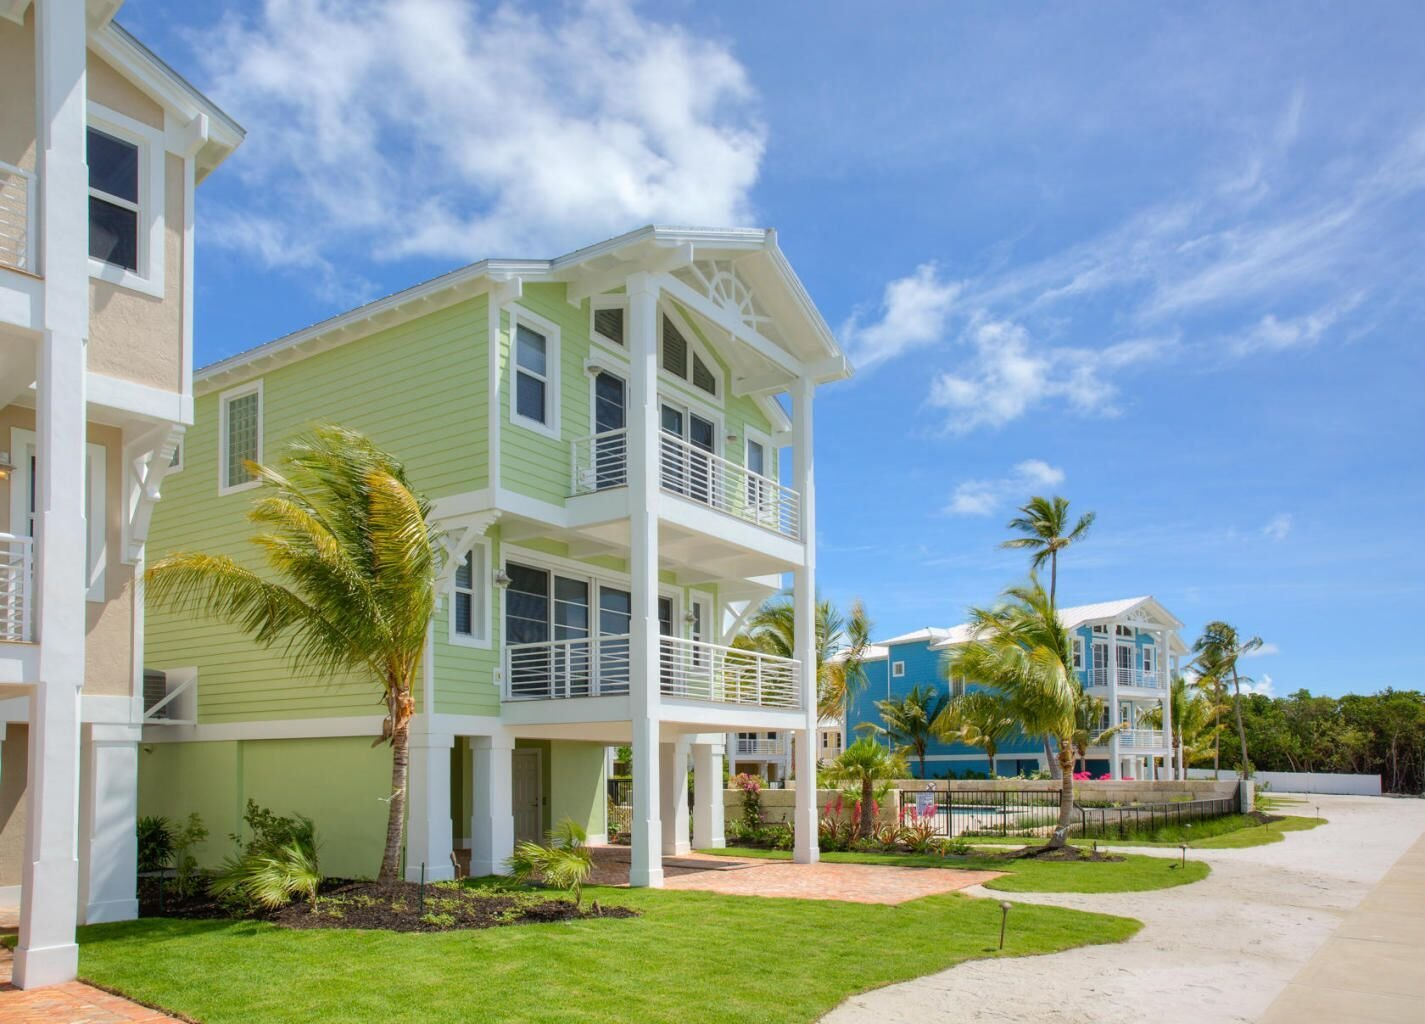 Best Find Islamorada Vacation Rentals Homes Condos Cottages With Pictures